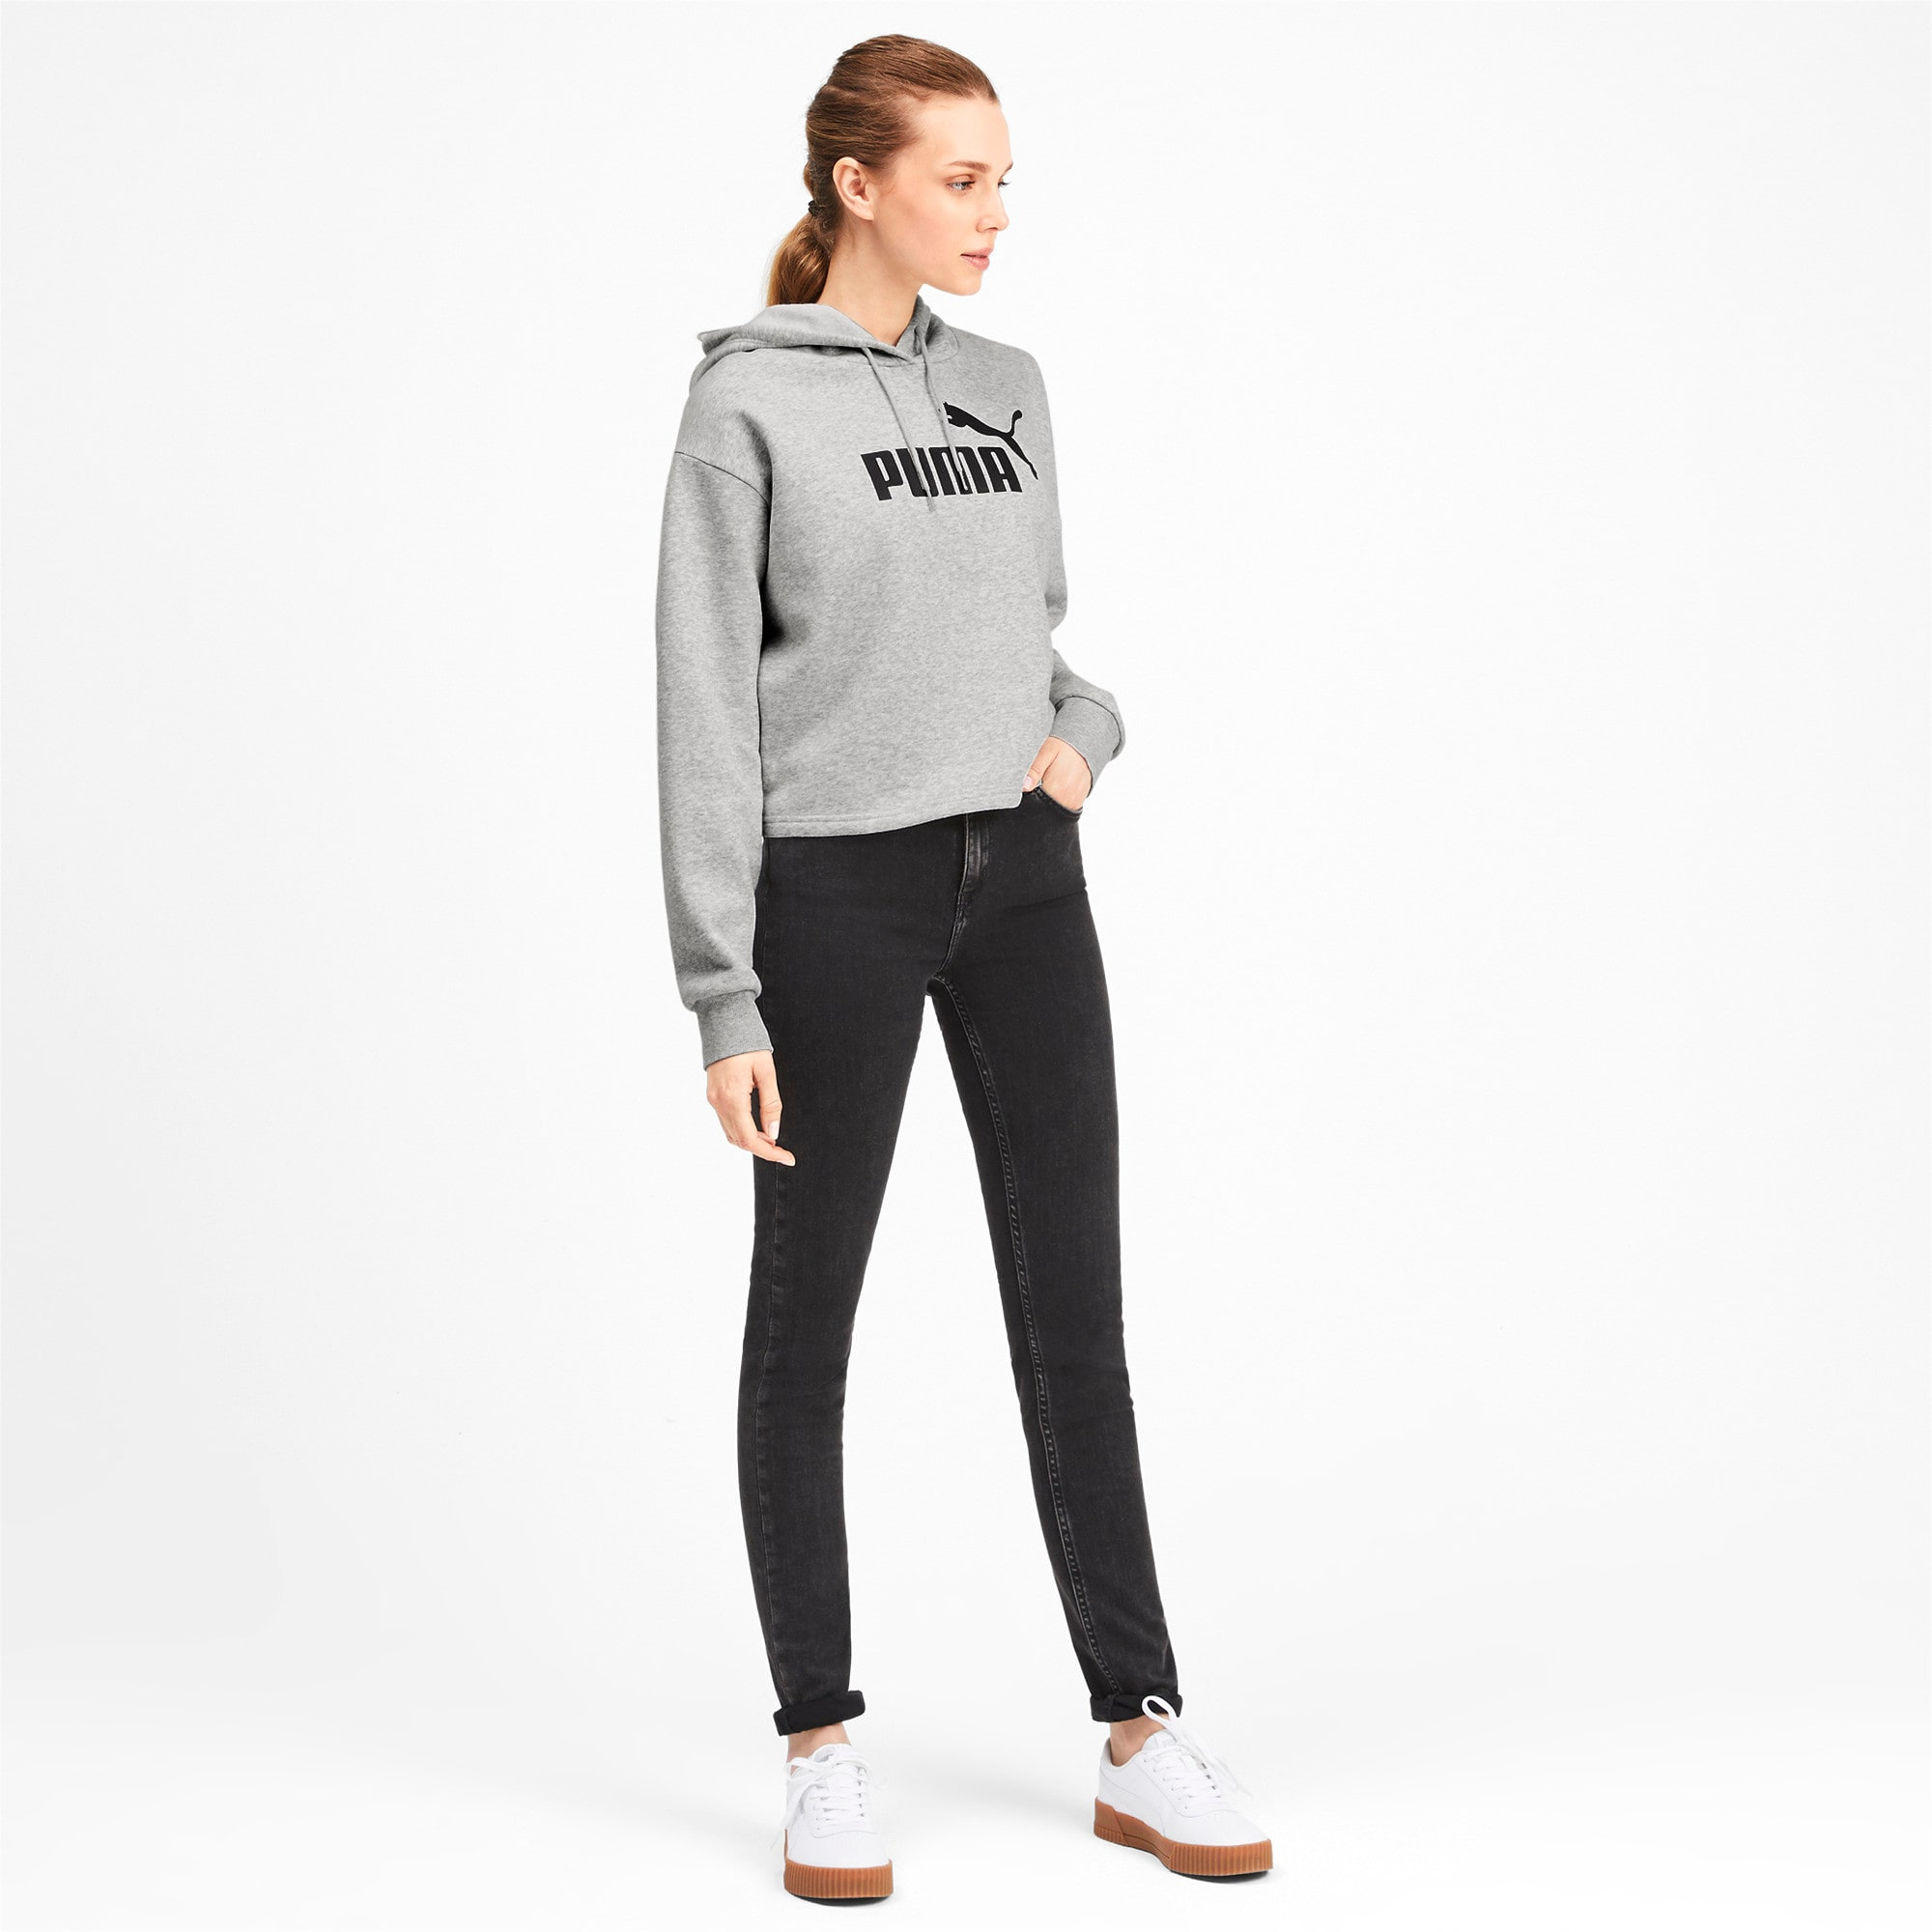 Thumbnail 3 of Elevated Essentials Cropped Women's Hoodie, Light Gray Heather, medium